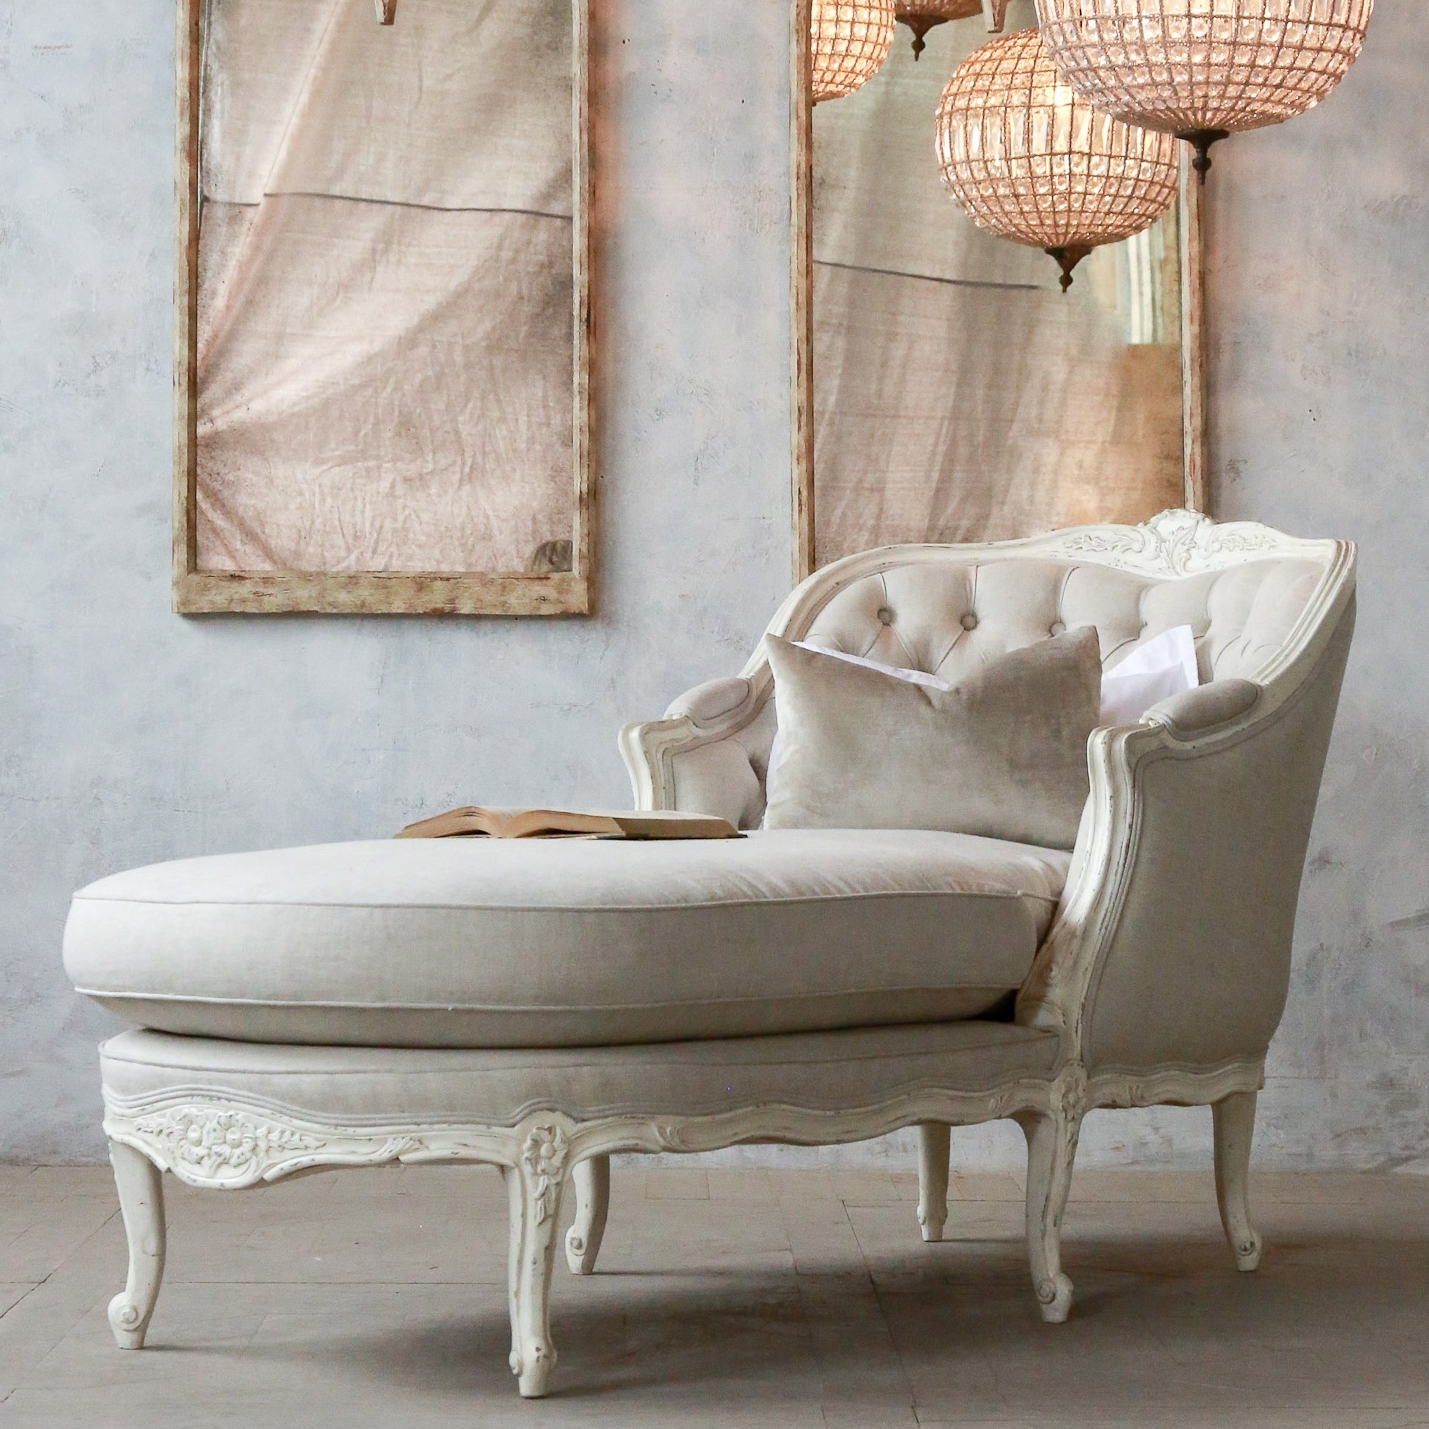 Most Recently Released Vintage Victorian Chaise Lounge – Home Design And Decor Regarding Victorian Chaises (View 3 of 15)